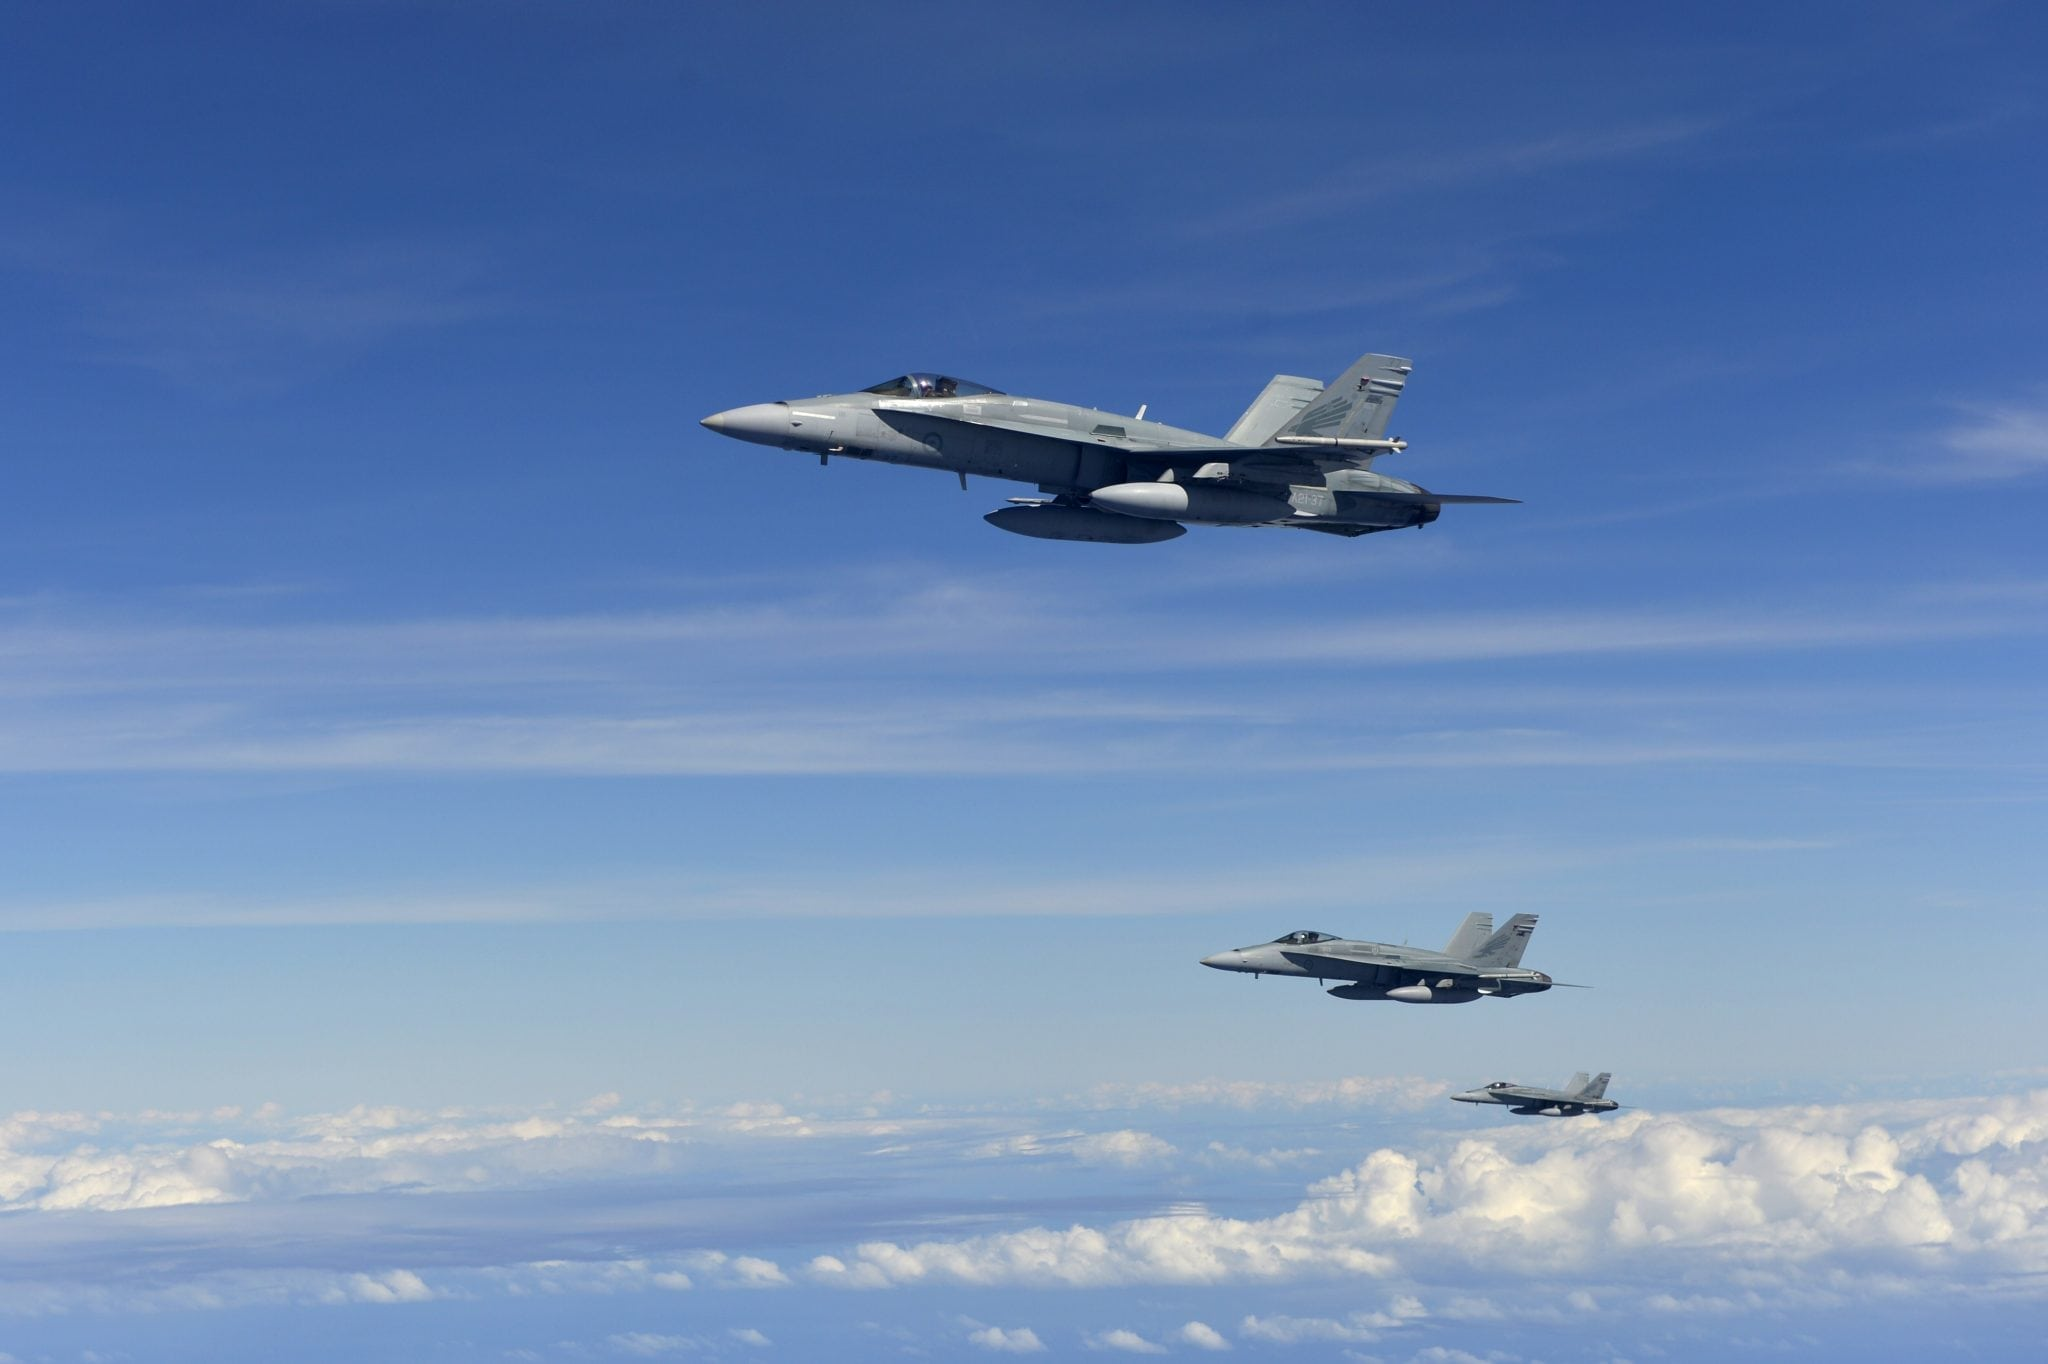 Three RAAF FA-18 Hornets in formation after refueling U.S. Air Force photo by Senior Airman Matthew Bruch